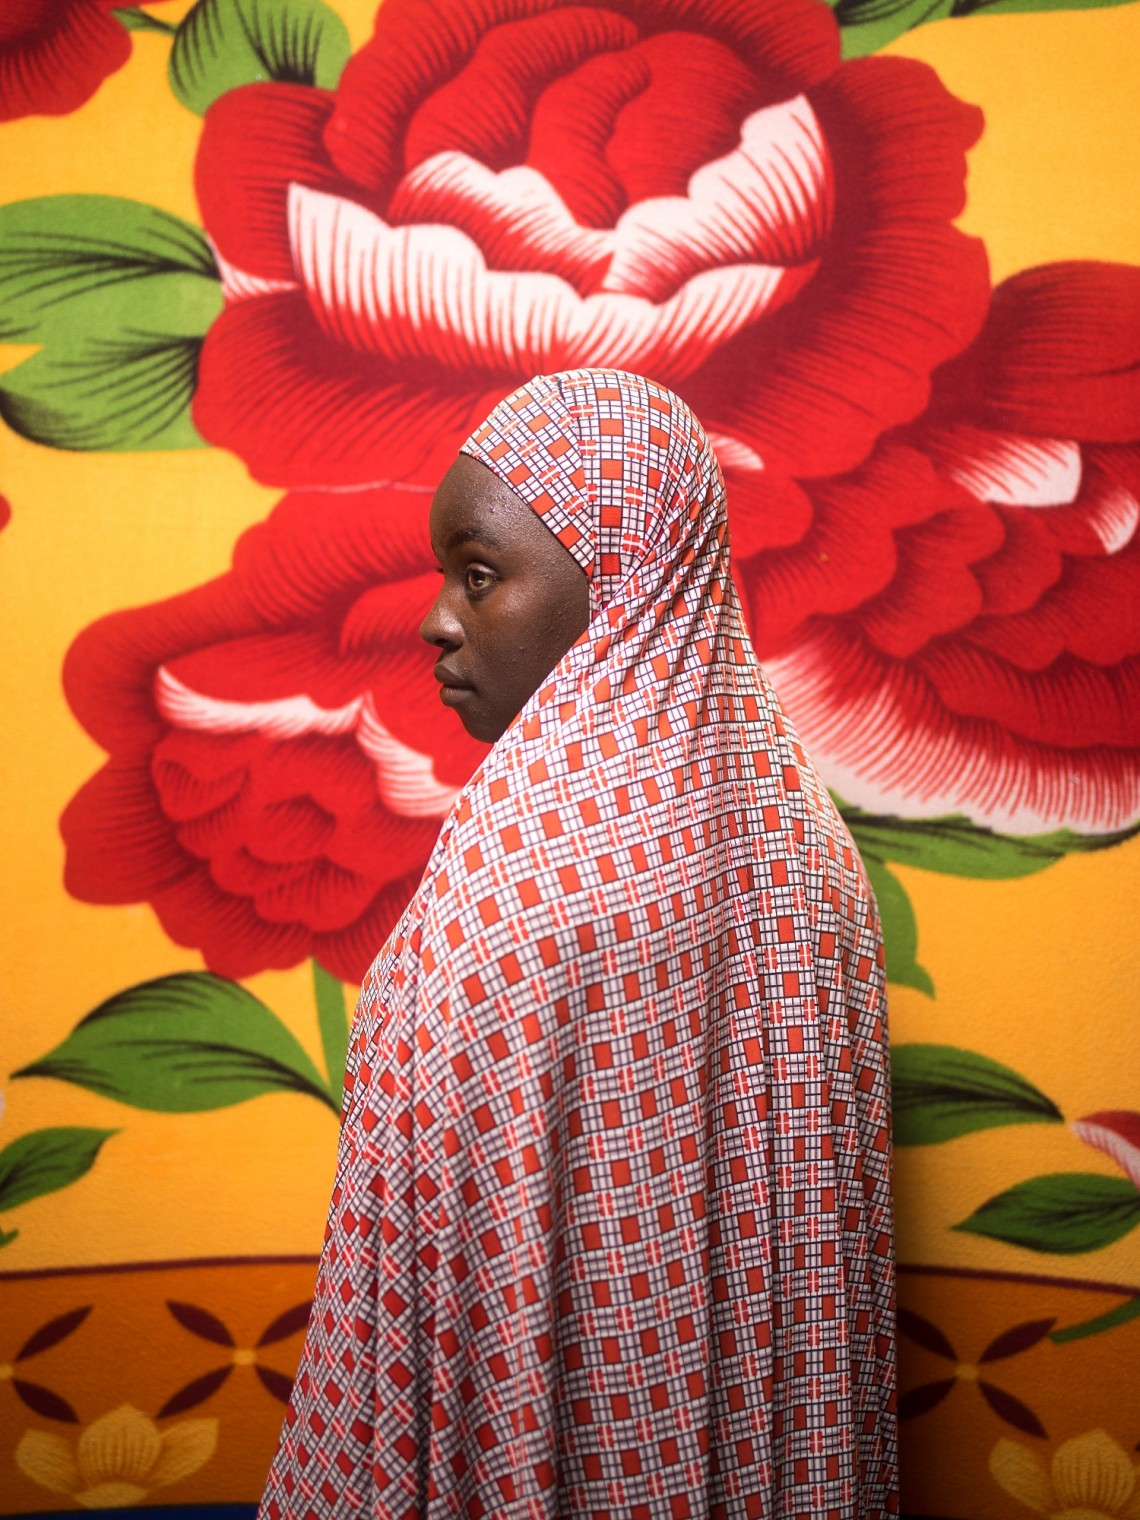 Fatima, 17 years old, Maiduguri, Nigeria.